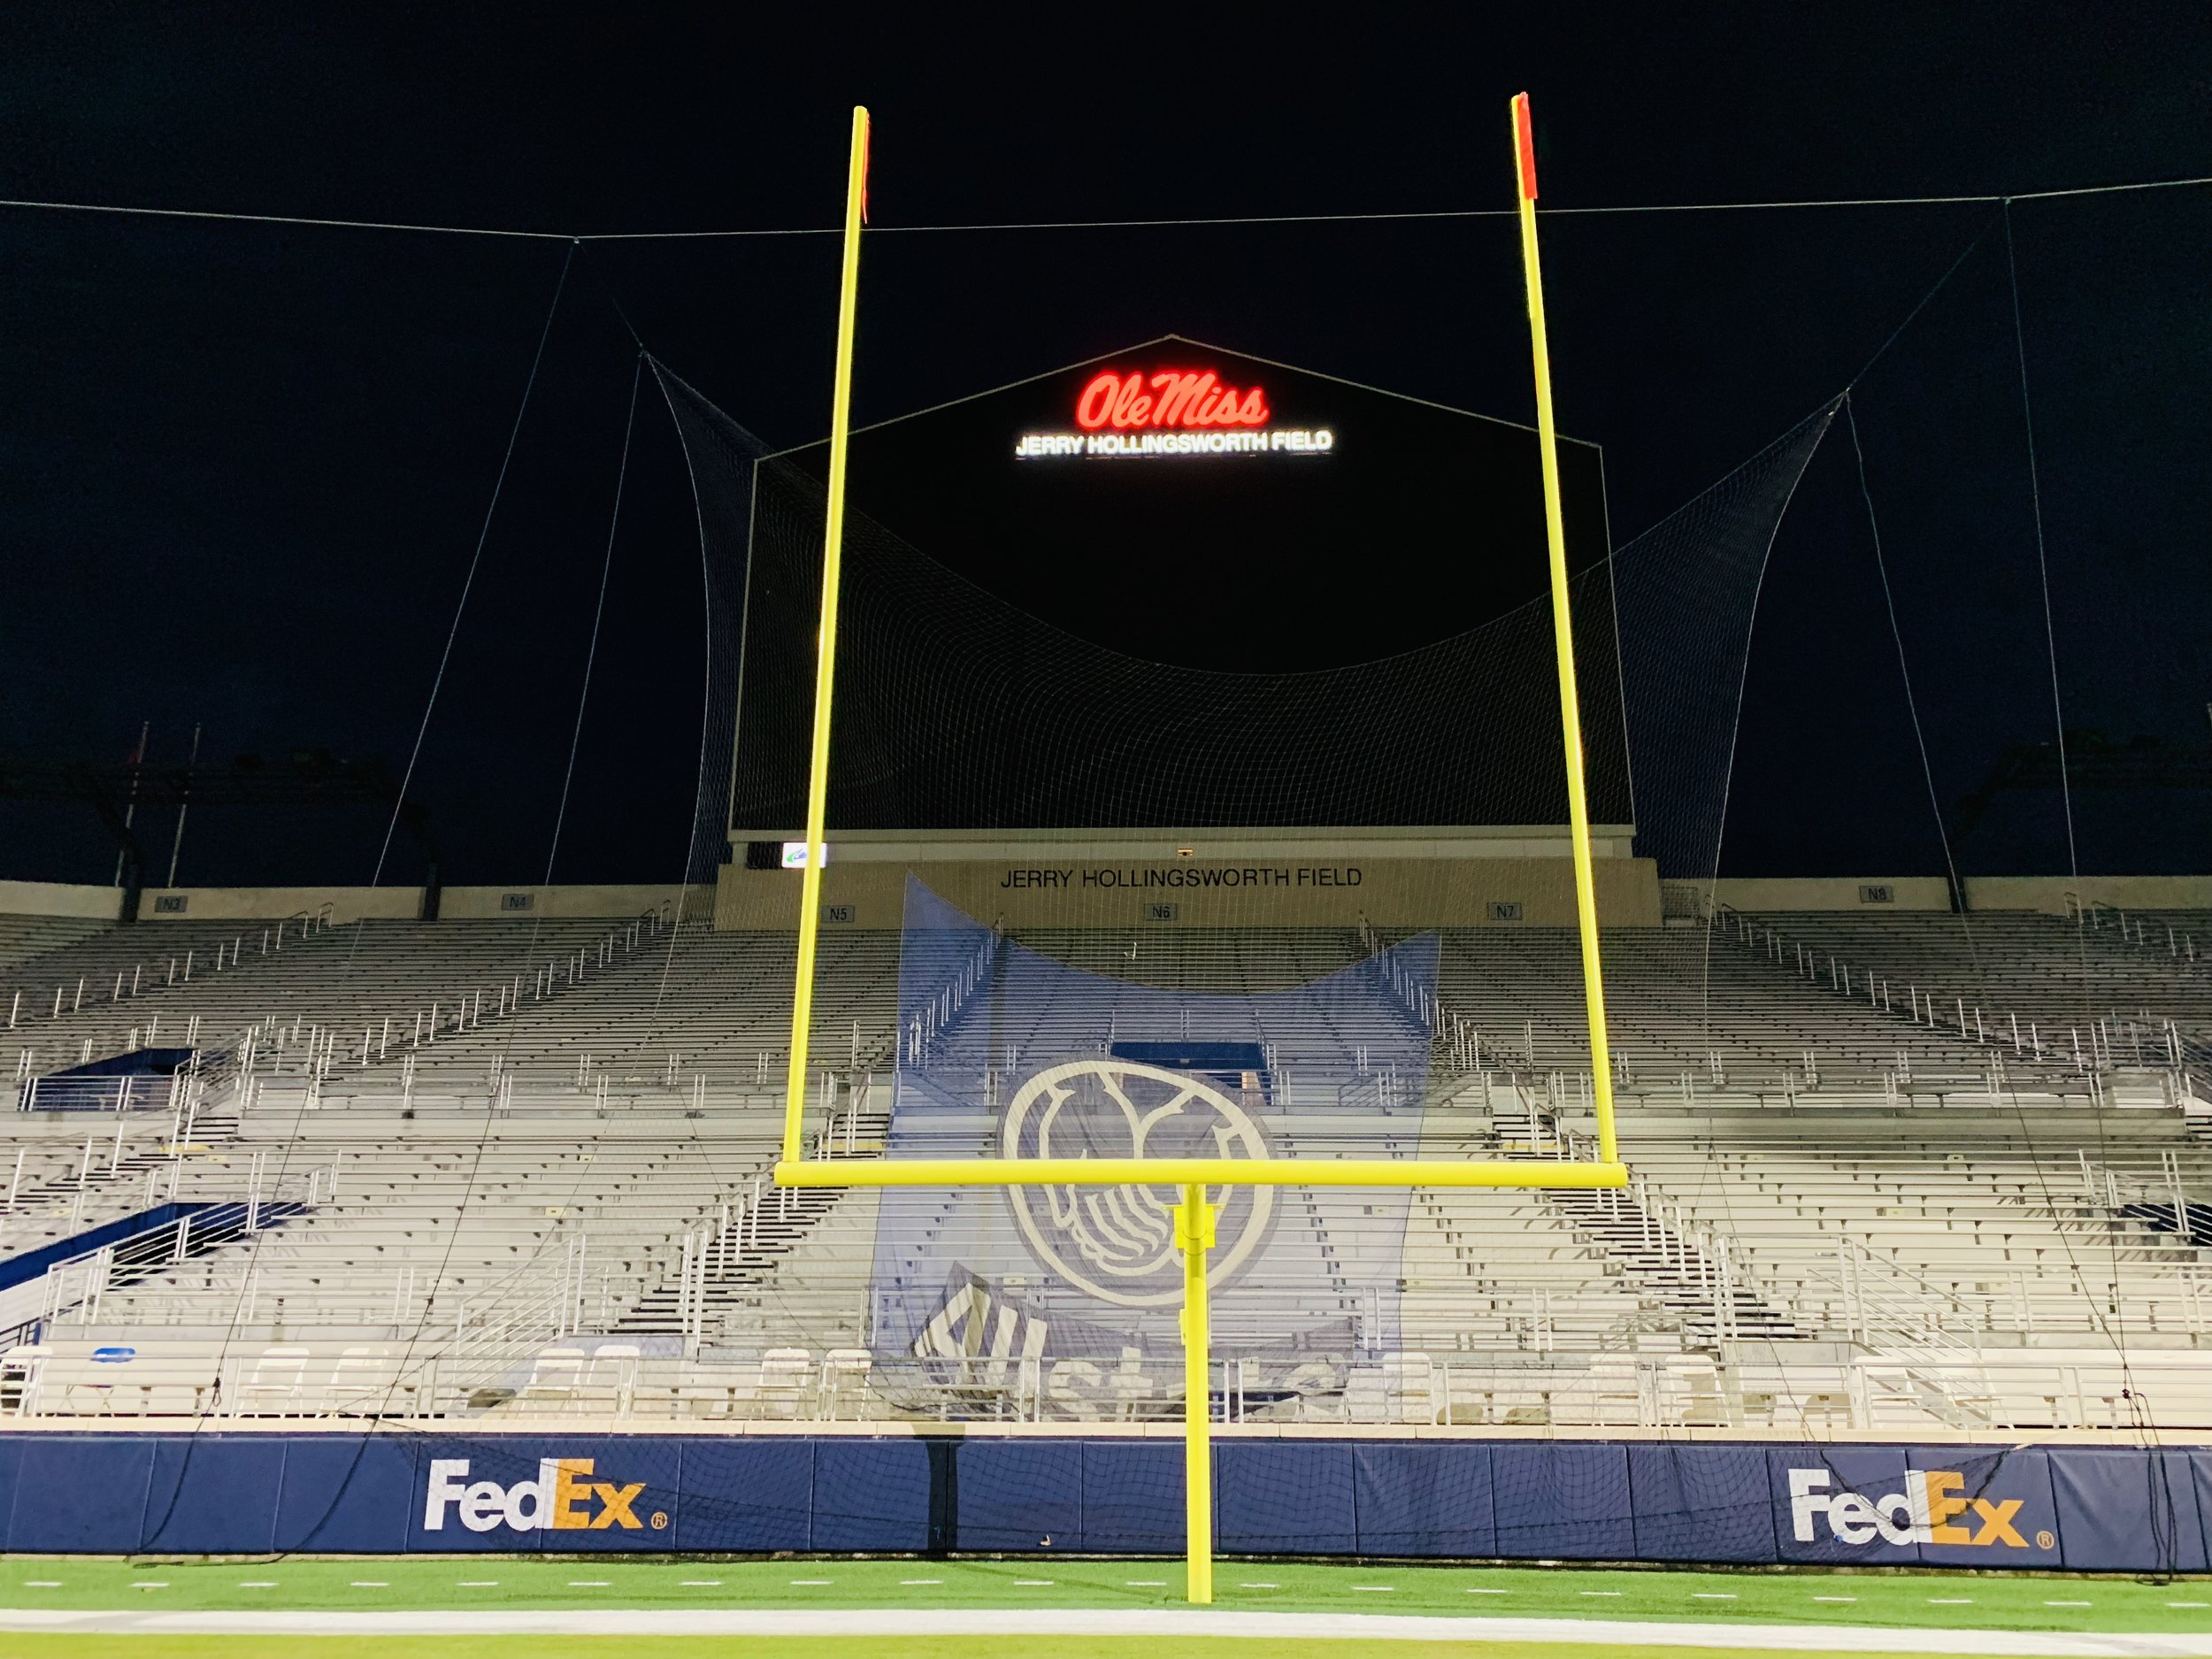 Ole-Miss_Stadium-Signage-Dimensional-Logos-Letters_Oxford-MS_14 ..